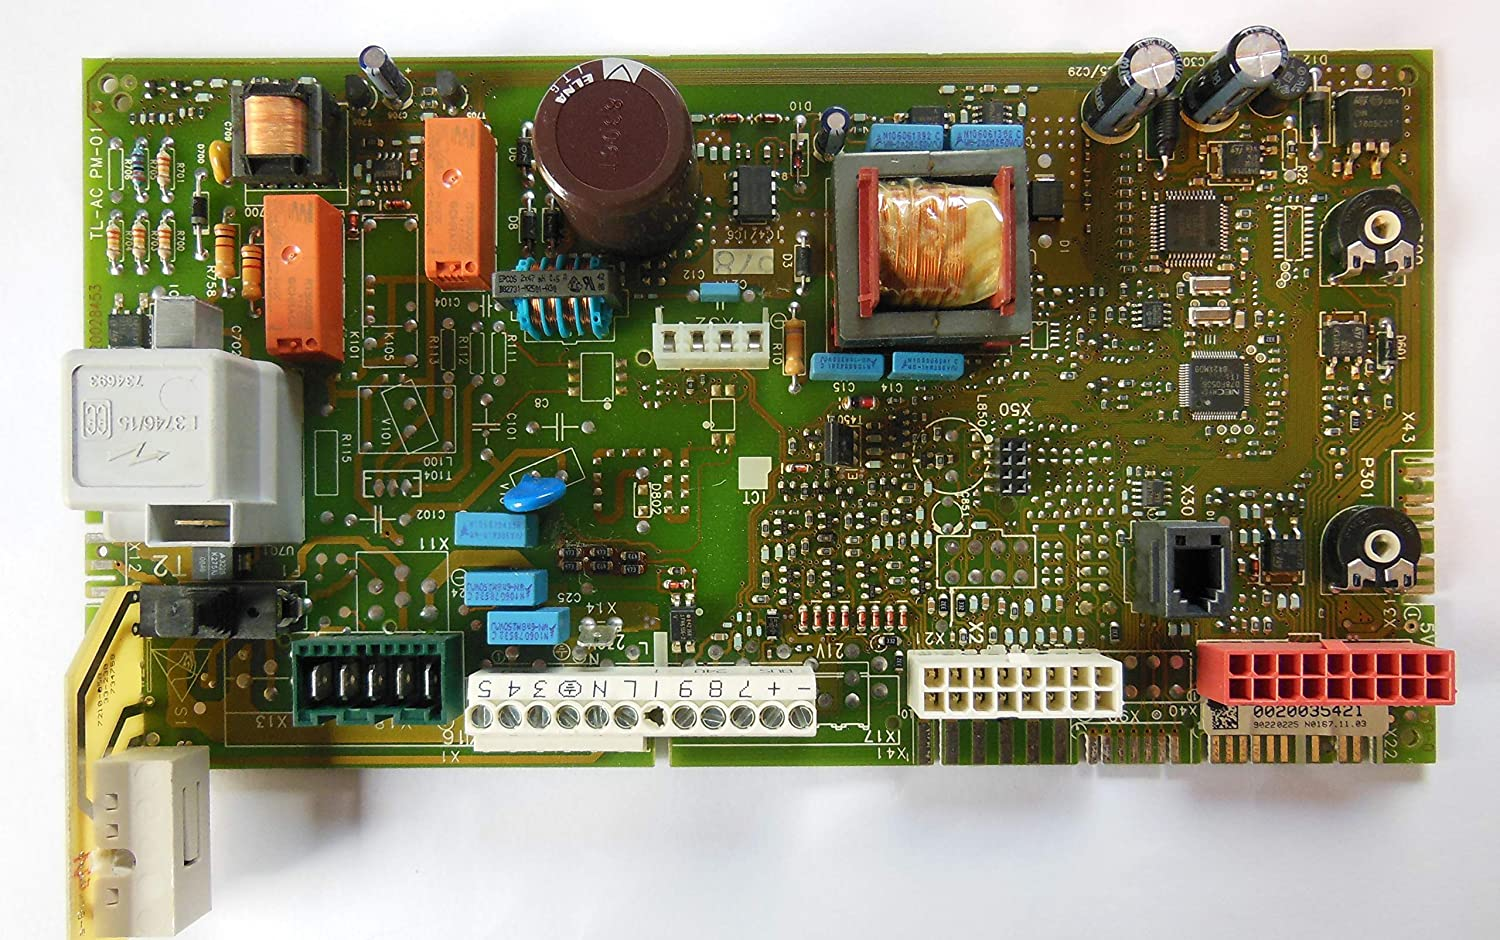 Vaillant Pcb Ecotec Plus Diy Tools Printed Circuit Board Recycling Equipment View